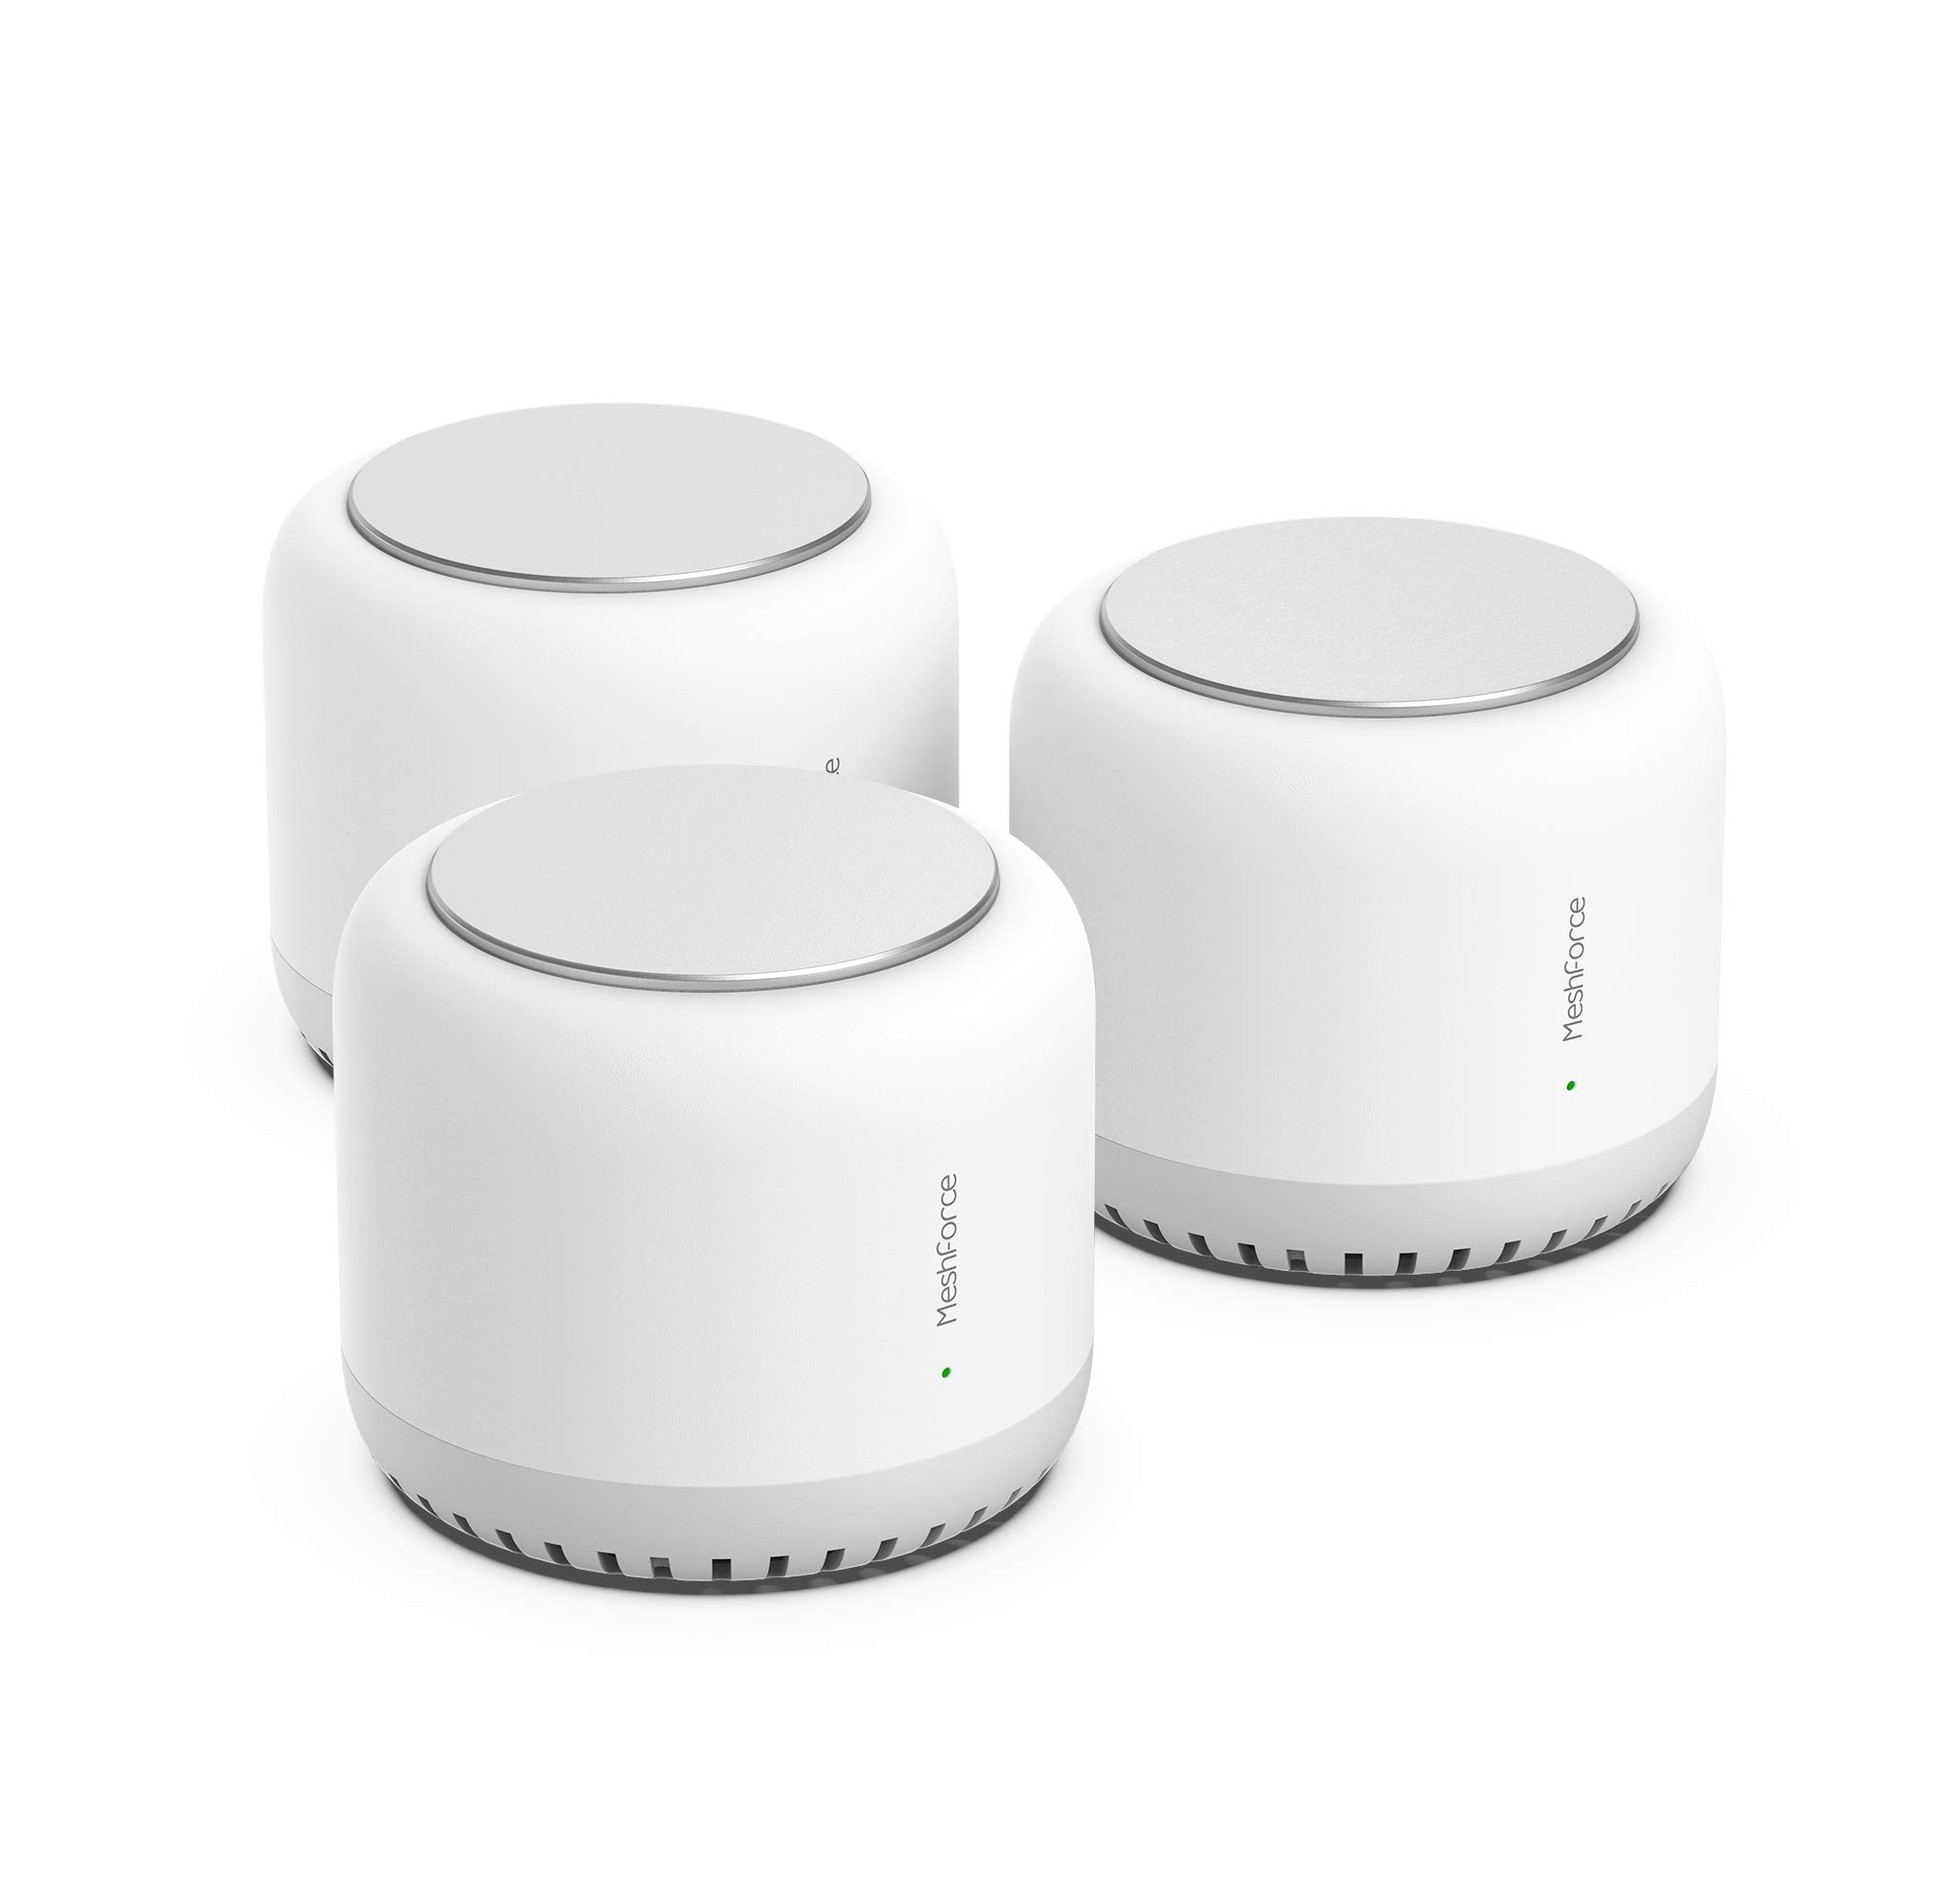 Meshforce M7 Tri-Band Whole Home Mesh WiFi System (3 Pack), Gigabit Mesh WiFi Routers, Seamless High Performance Wireless Covers 7+ Rooms and 75+ Devices